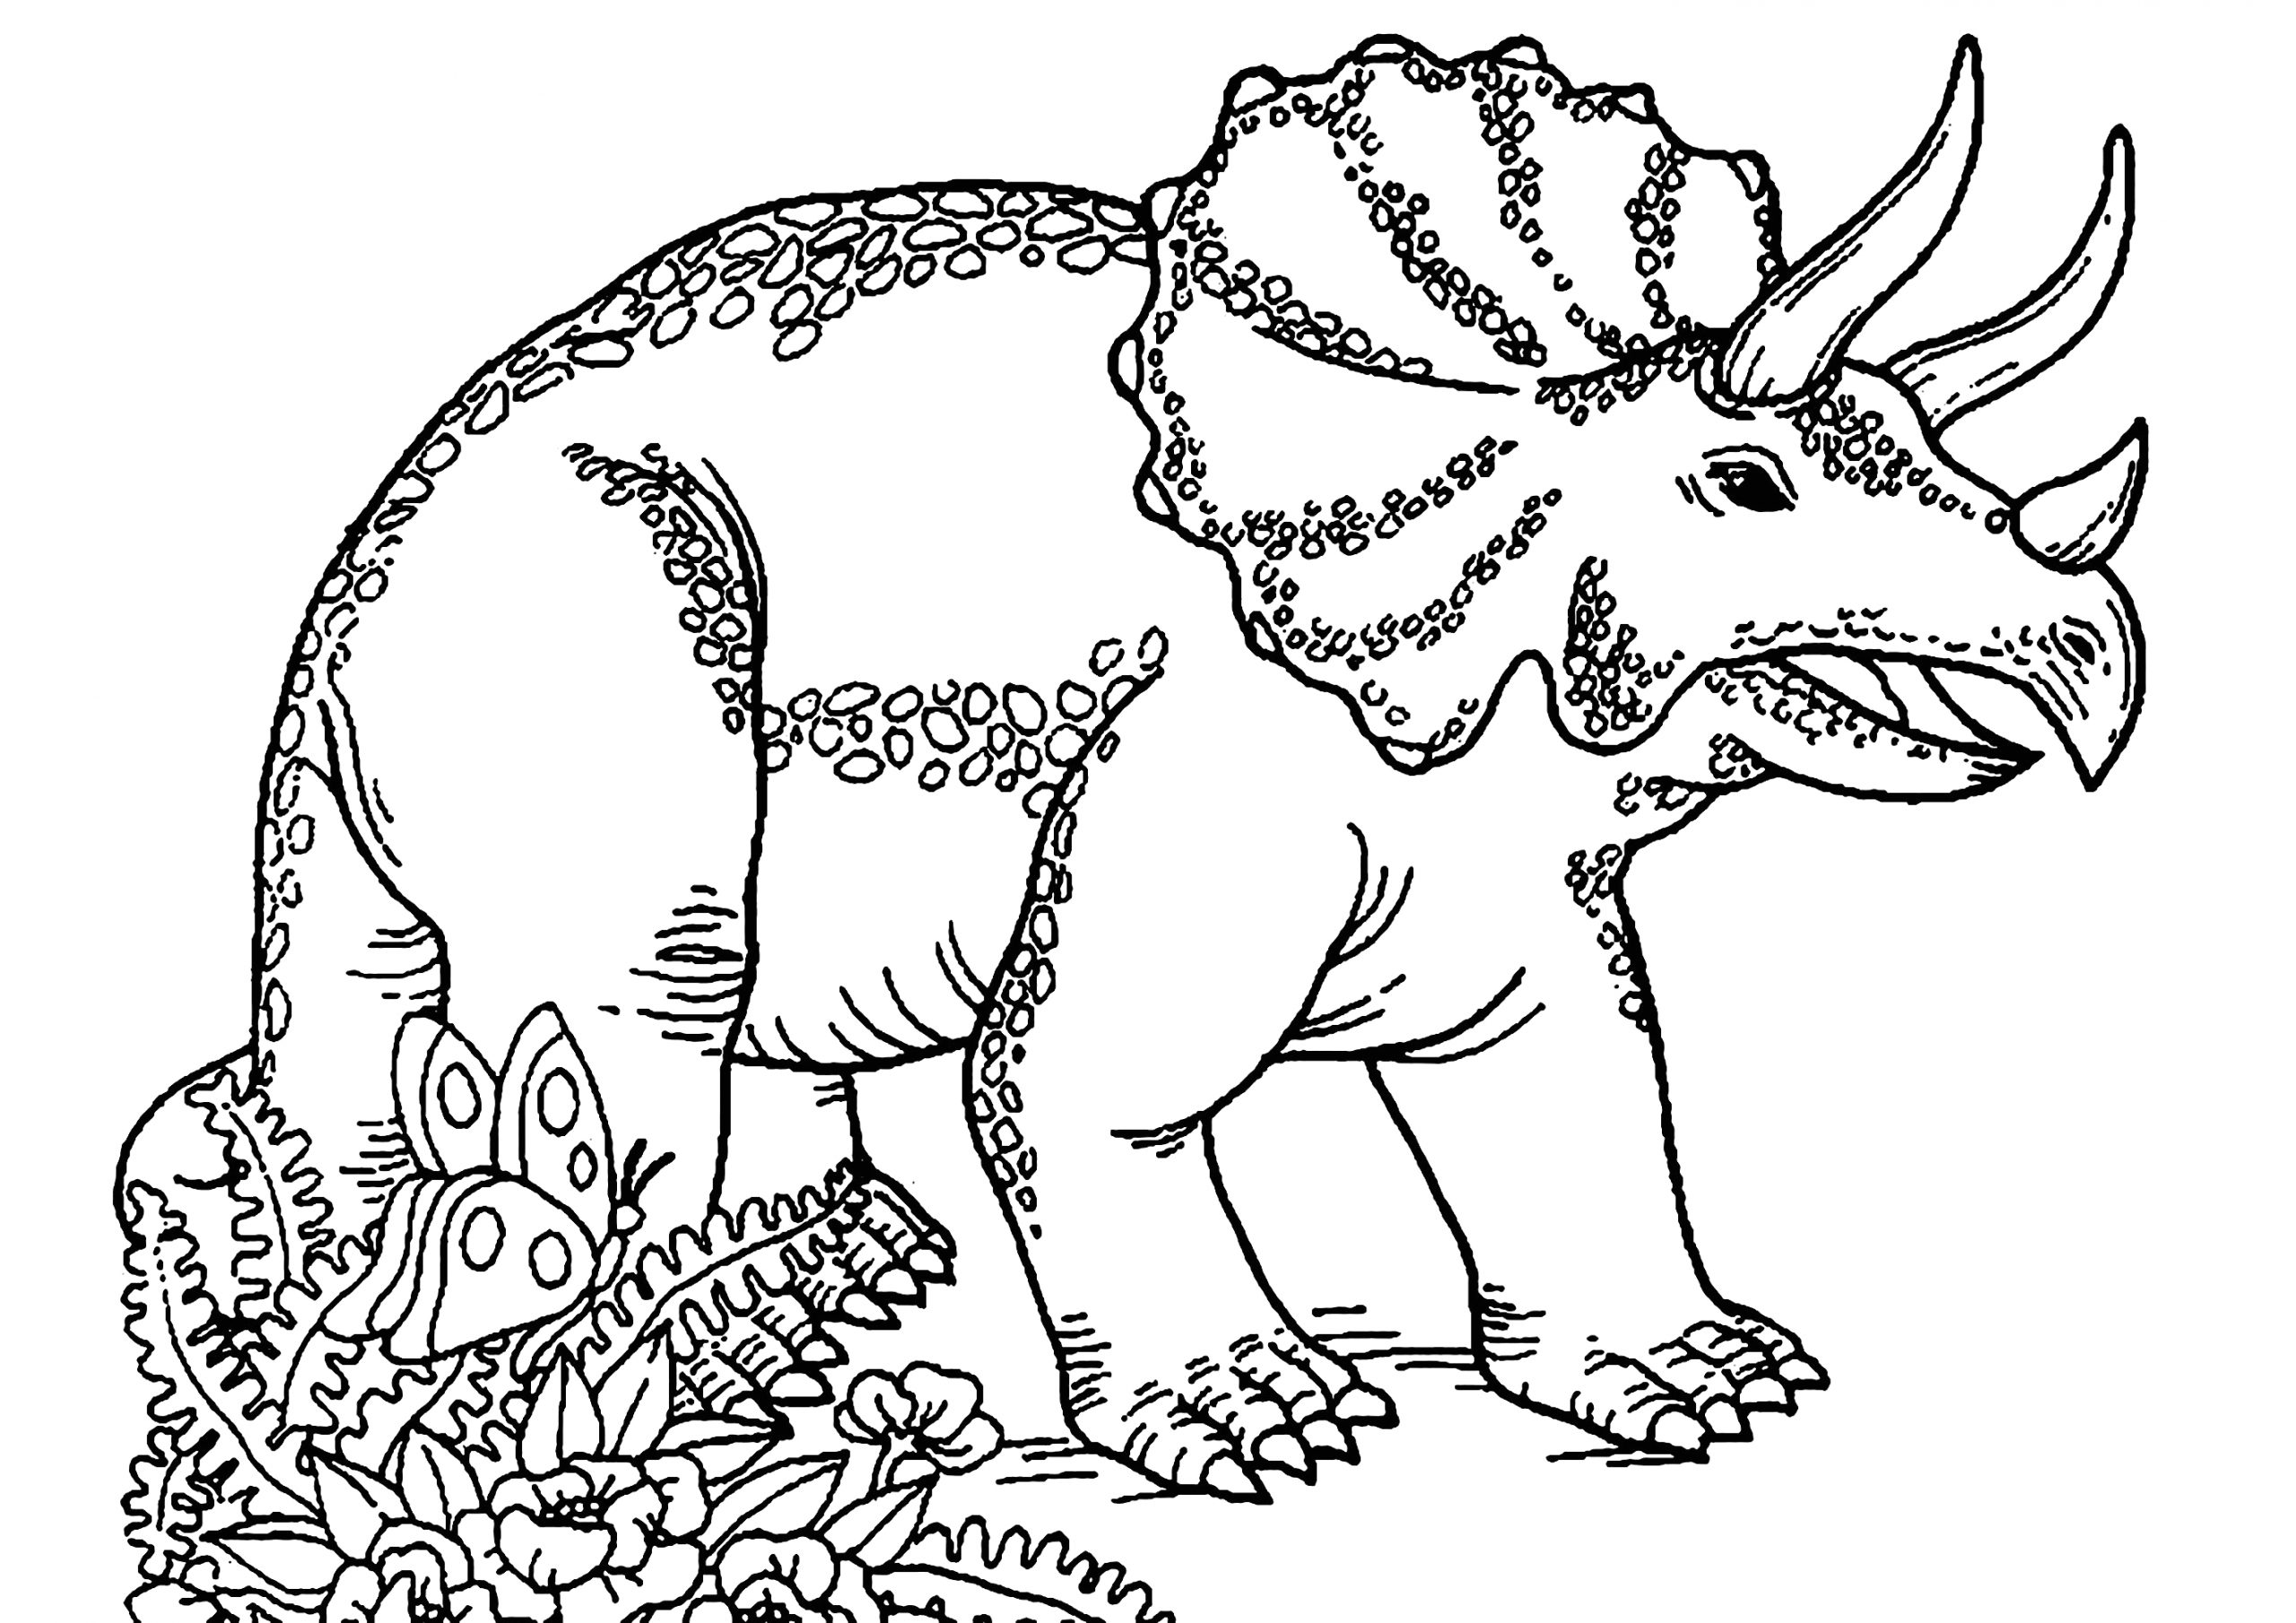 Free Printable Dinosaur Coloring Pages for toddlers Dinosaurs to Print Triceratops Dinosaurs Kids Coloring